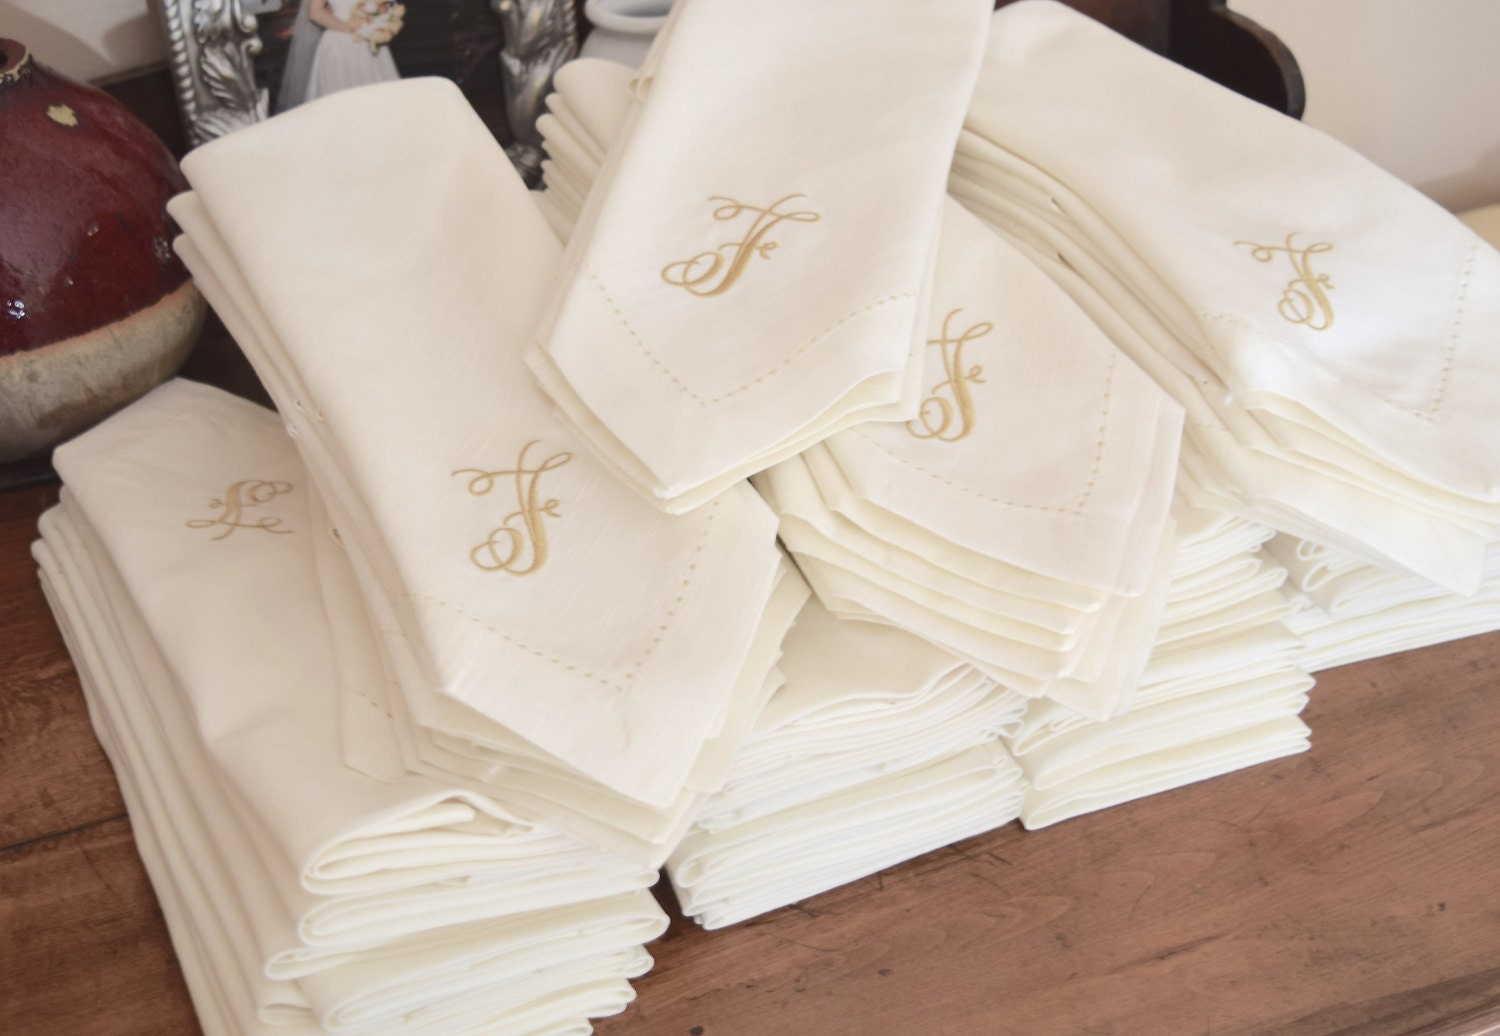 bulk monogrammed wedding napkins set of 50 custom napkins